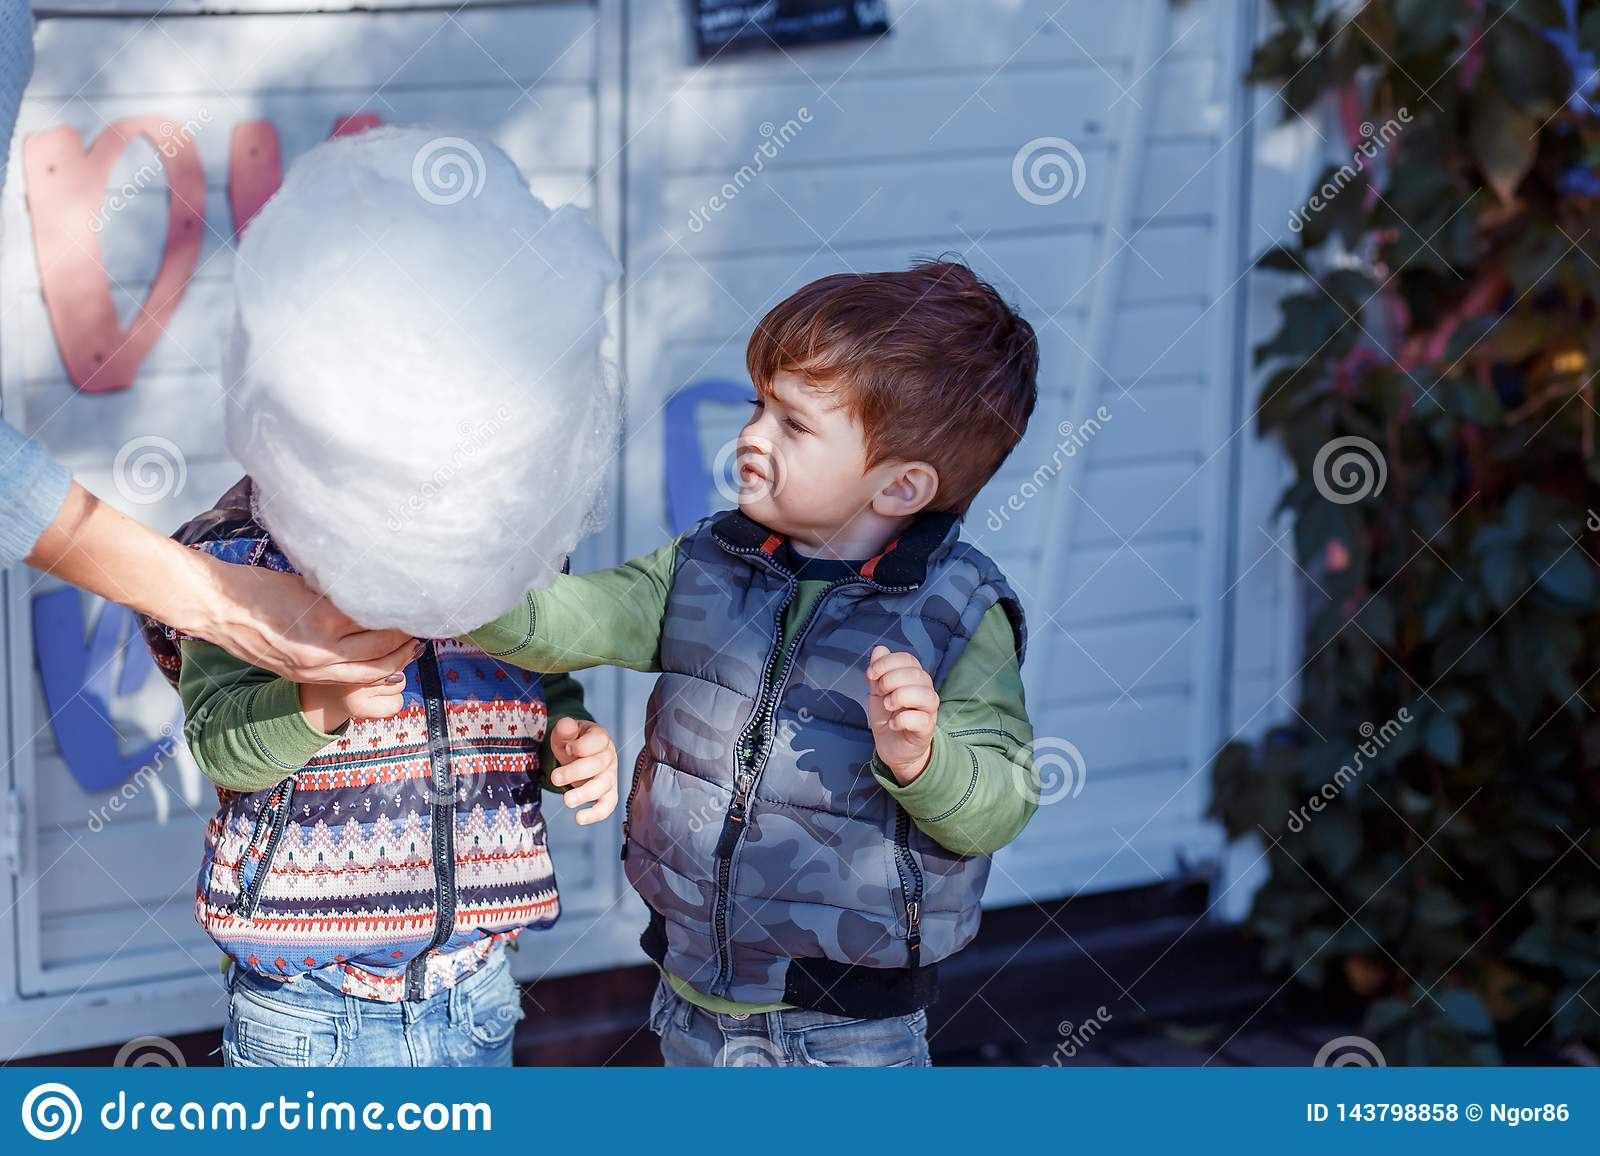 Natural pictures of a happy family of four having fun outsiade and eating sugar floss. A family of four